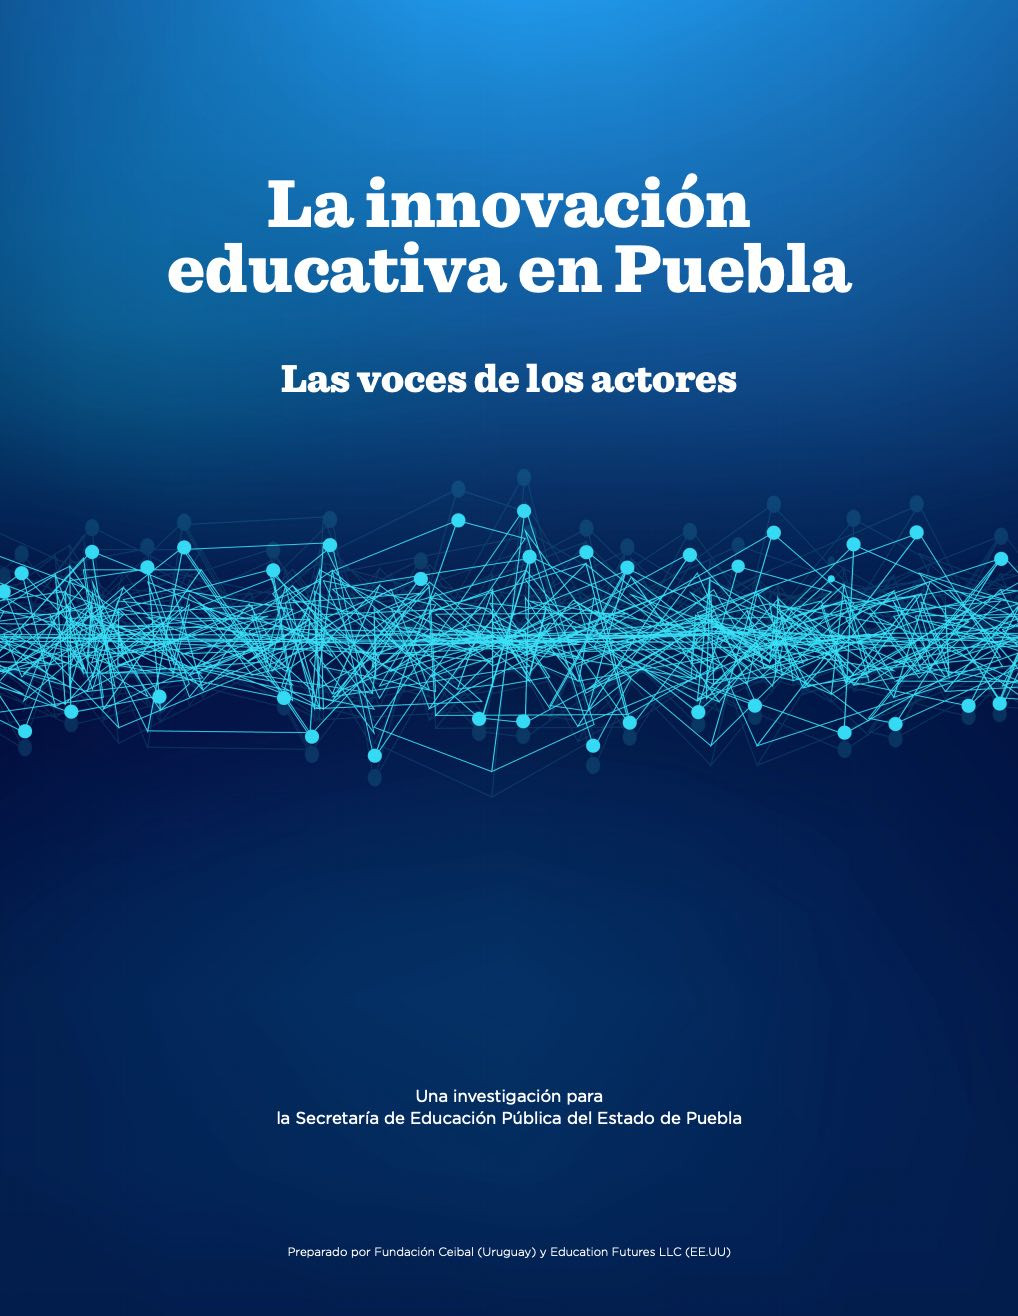 La innovación educative en Puebla